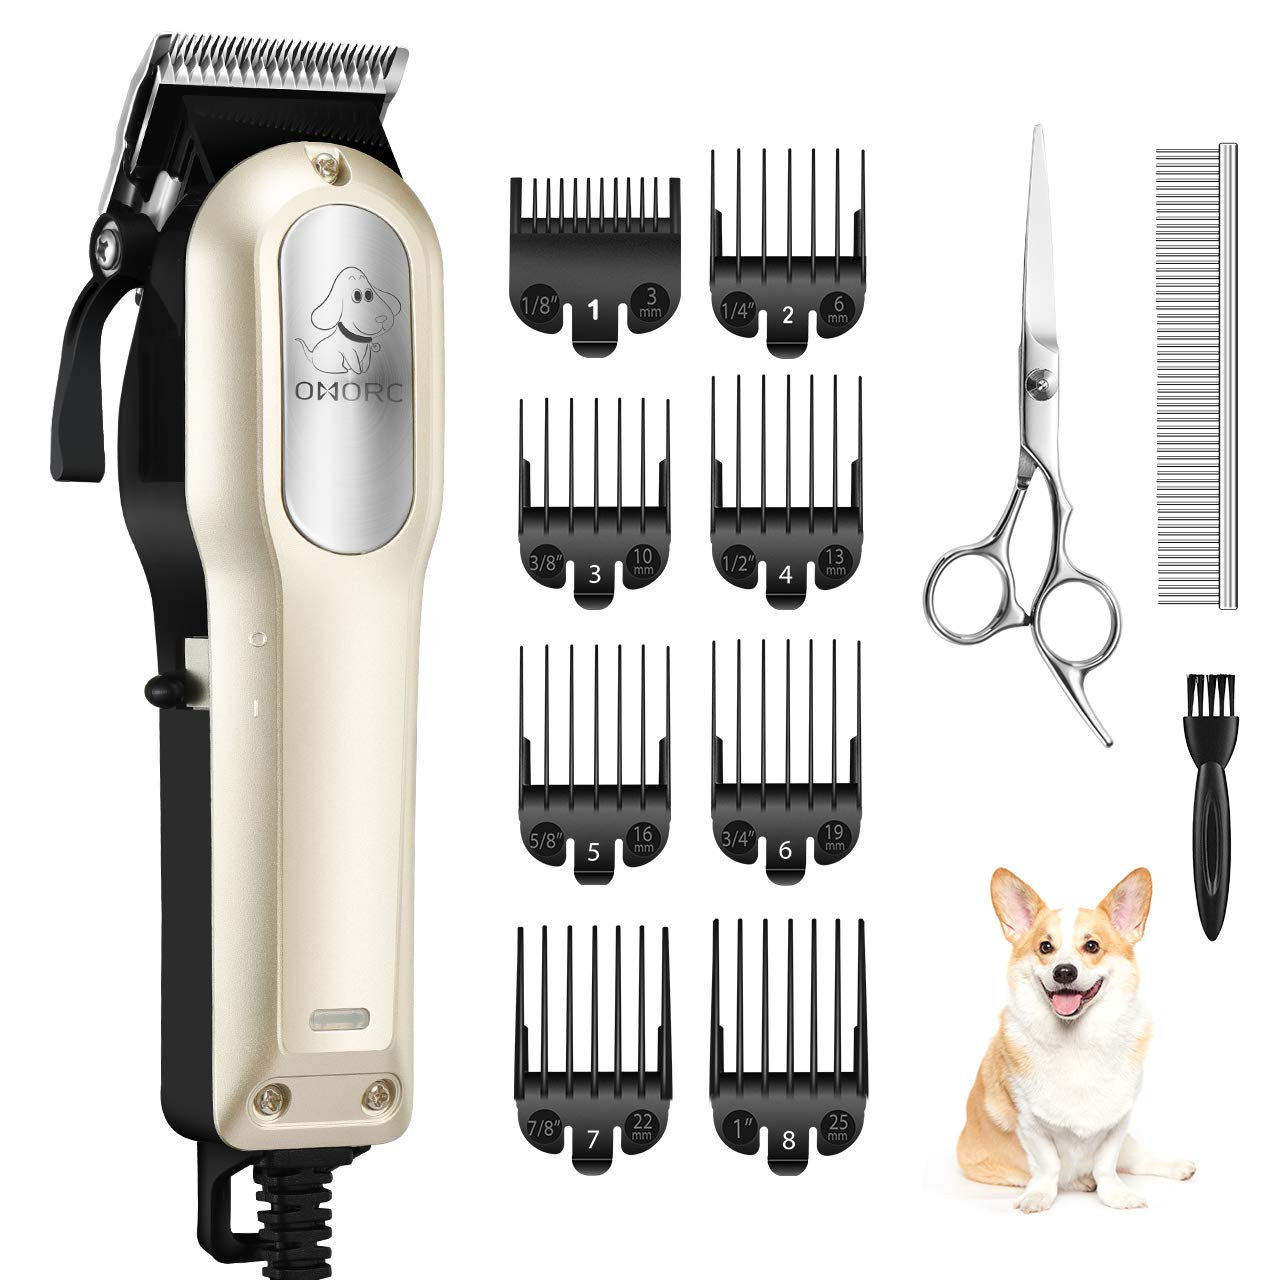 OMORC Dog Grooming Kit, Powerful Heavy-Duty Dog Clippers Low Noise Electric Dog Grooming Clippers Pet Clippers with 8 Comb Guides Scissors for Thin/Thick Coats Dogs Cats Pets by OMORC